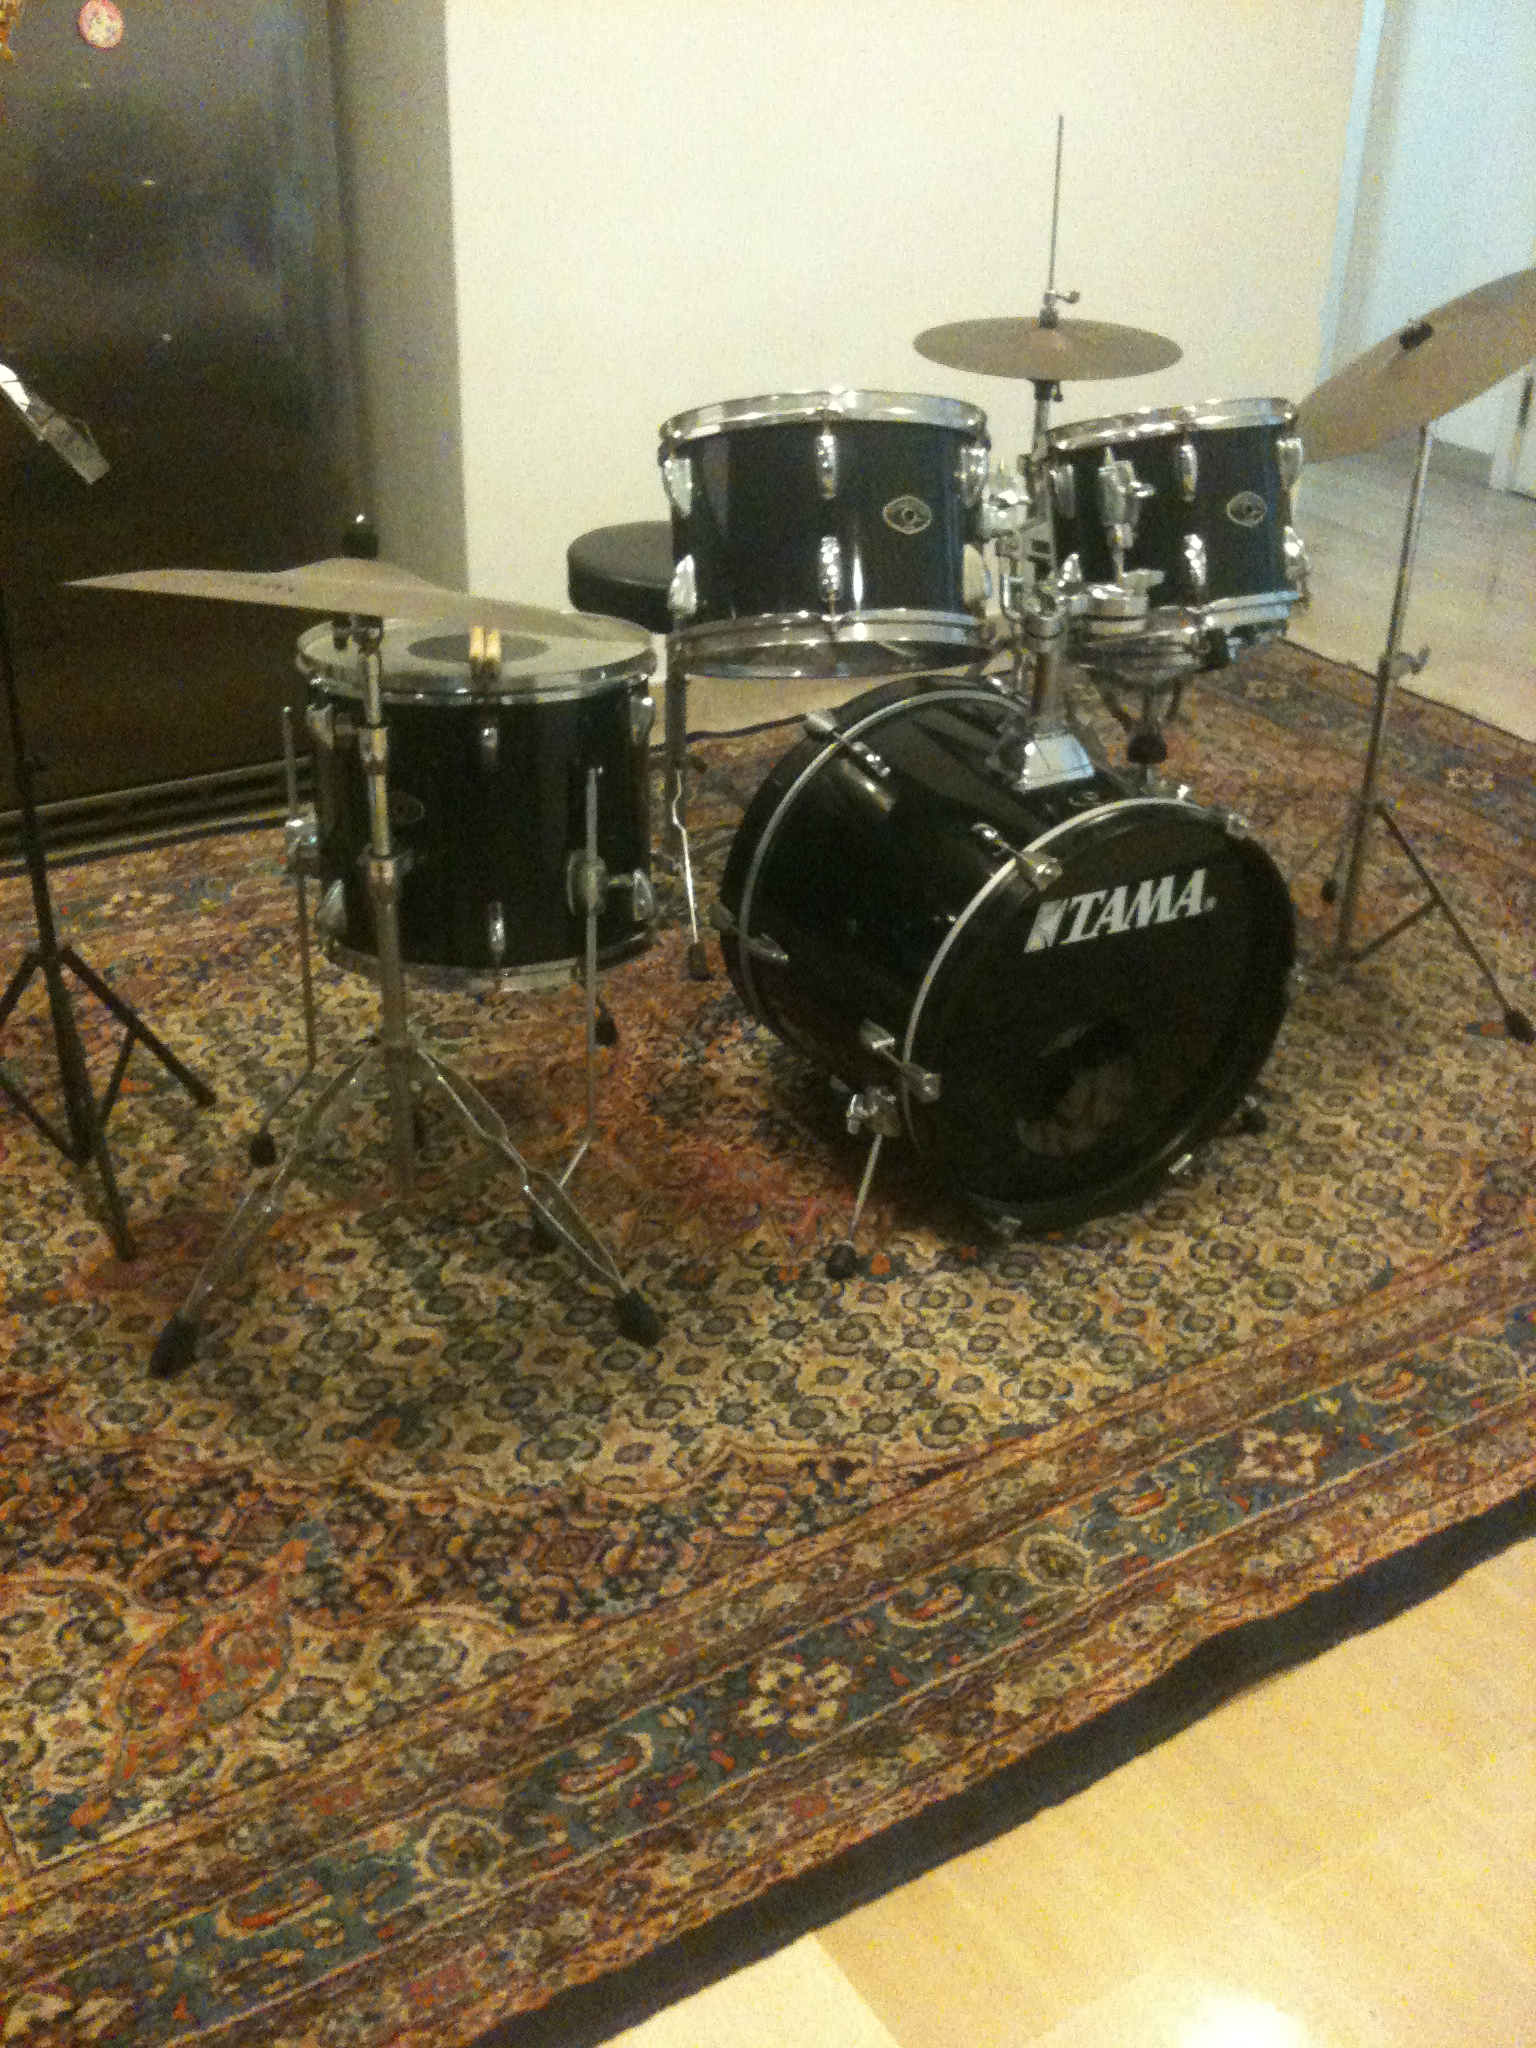 FOR SALE: TAMA Drums set